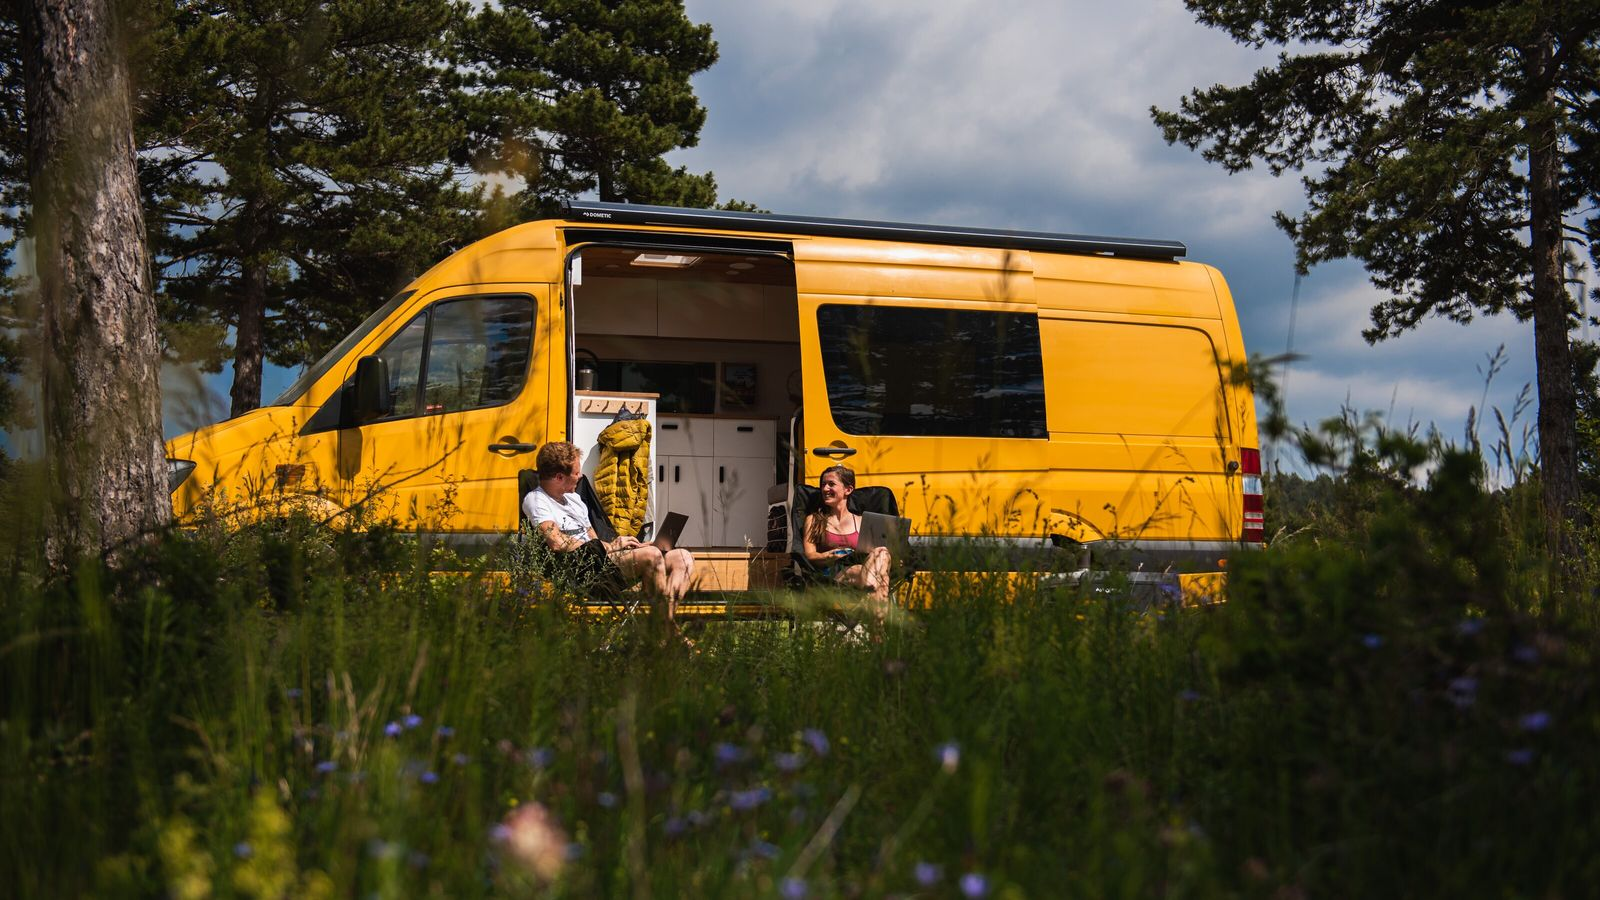 The National Caravan Council reports sales of motorhomes tripling since 2000, while Auto Trader's 2020 survey found ...